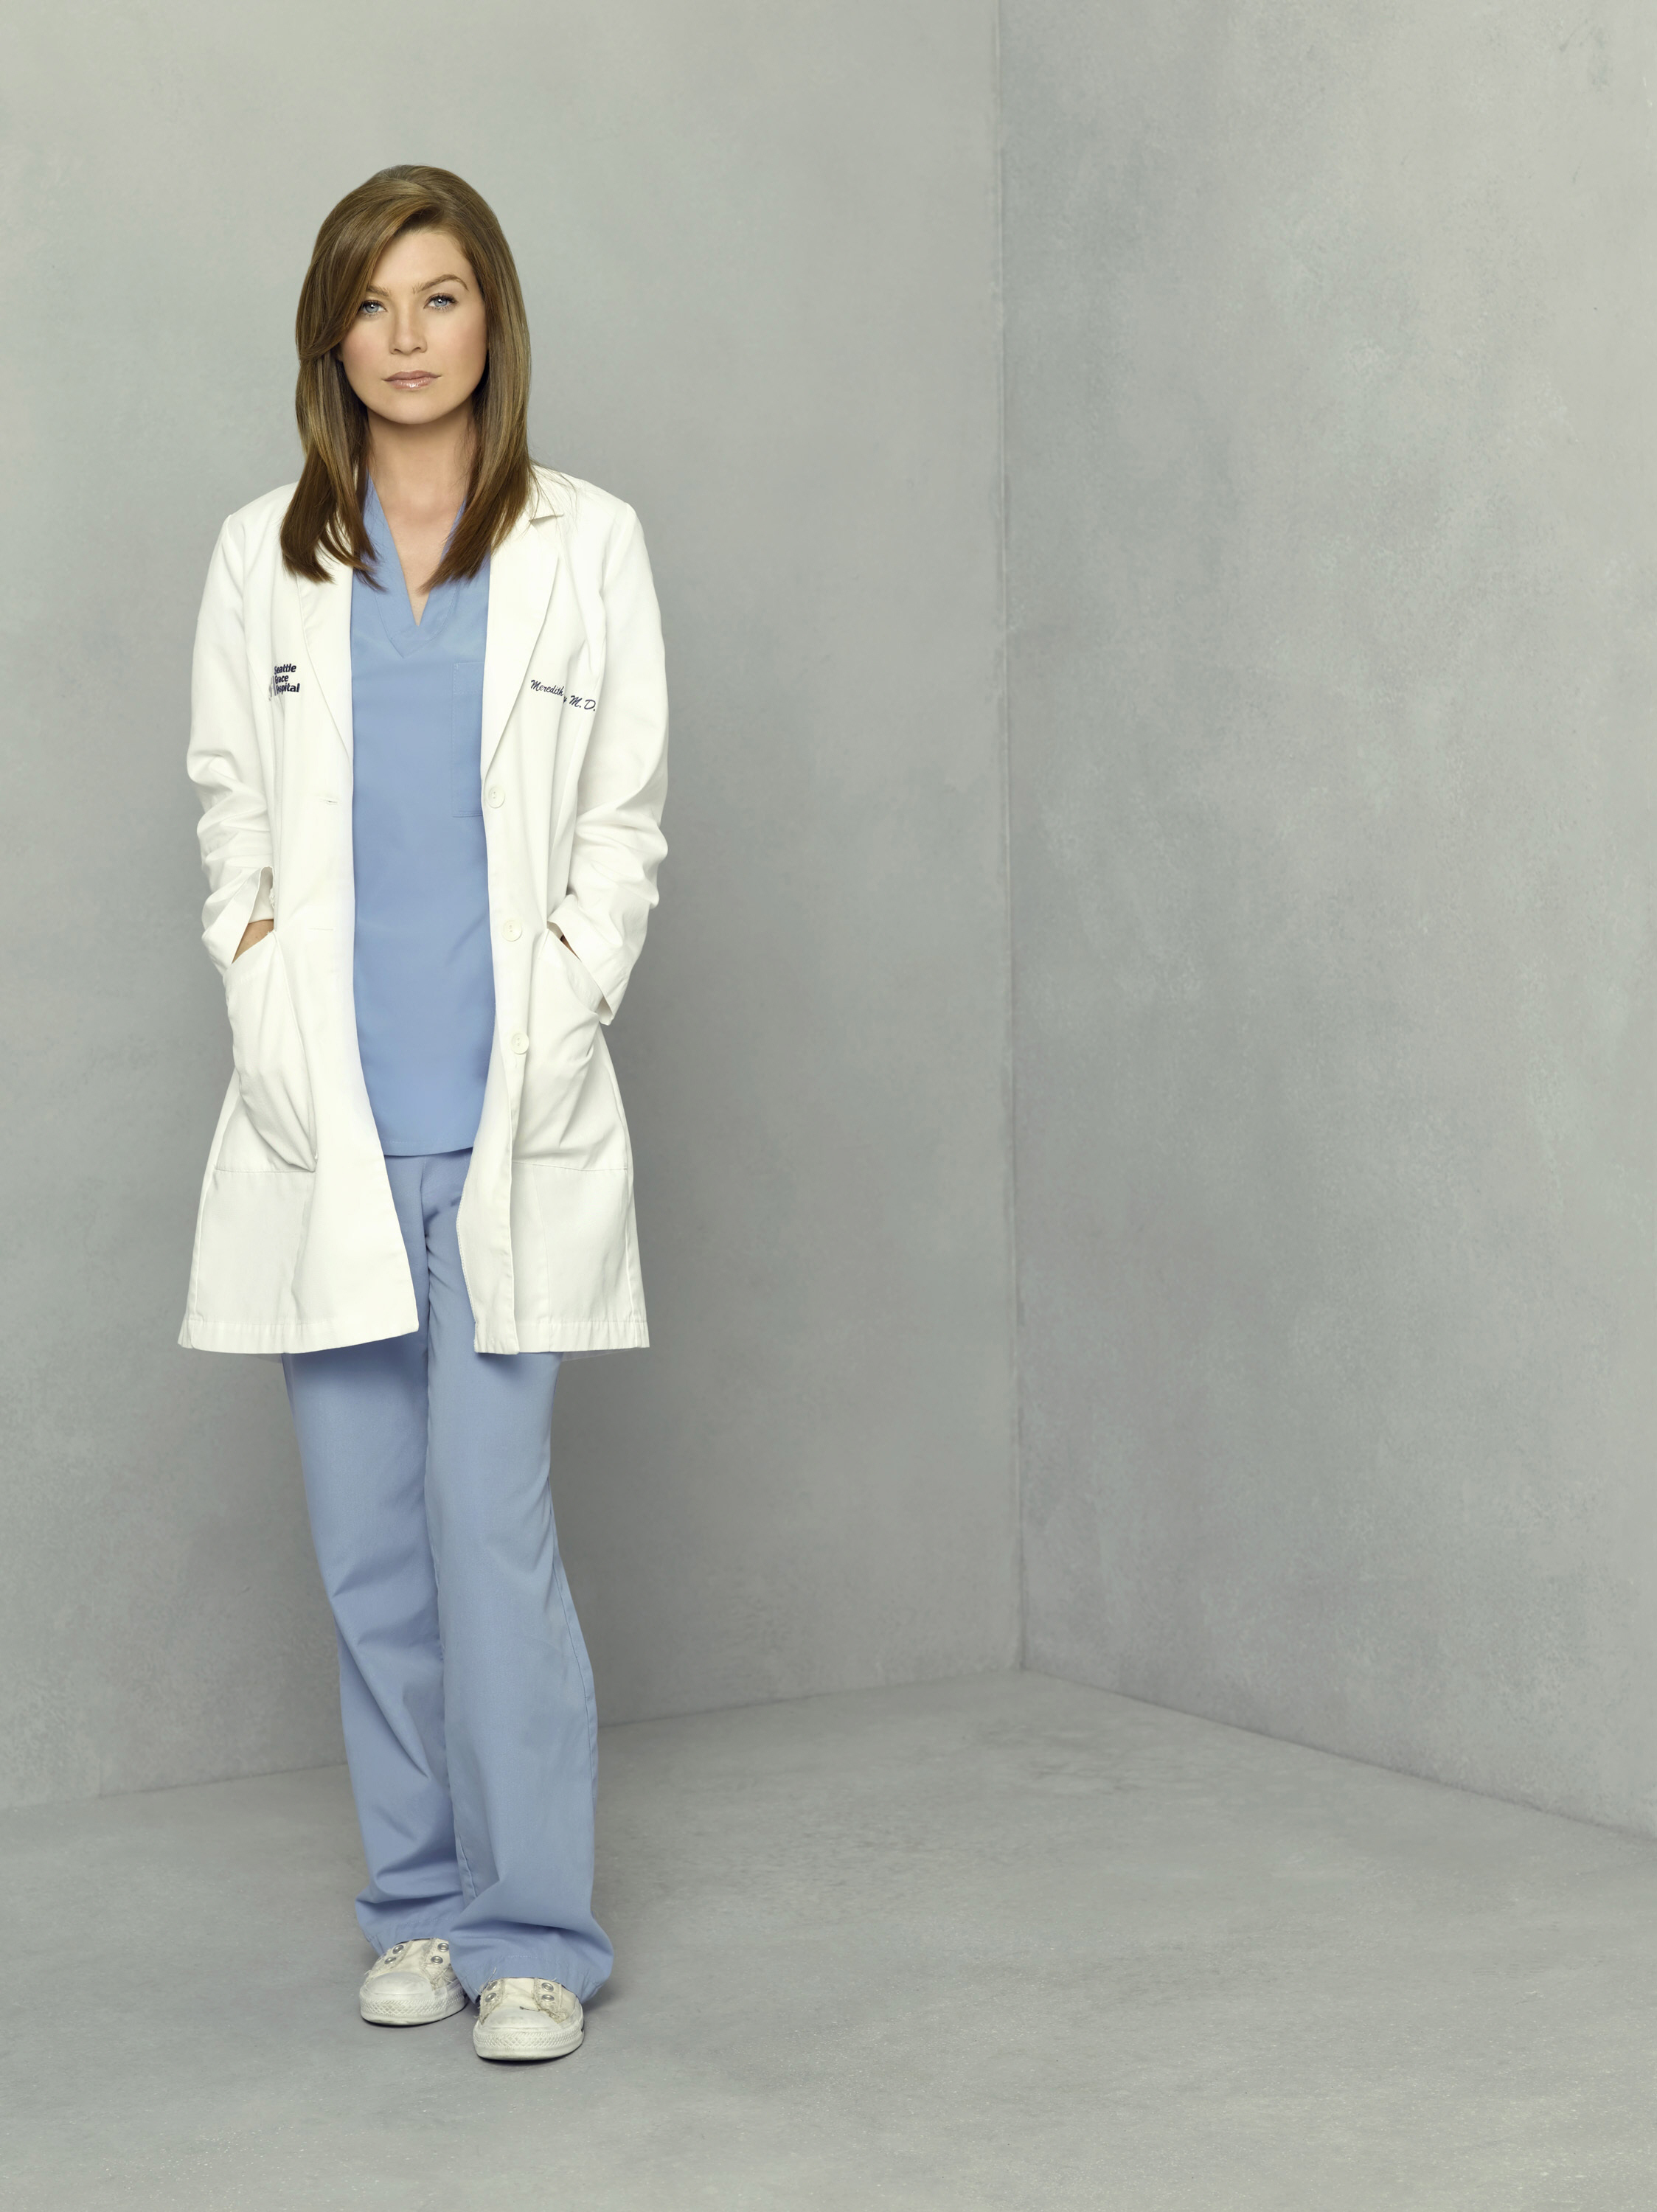 No. 3: Dr. Meredith Grey